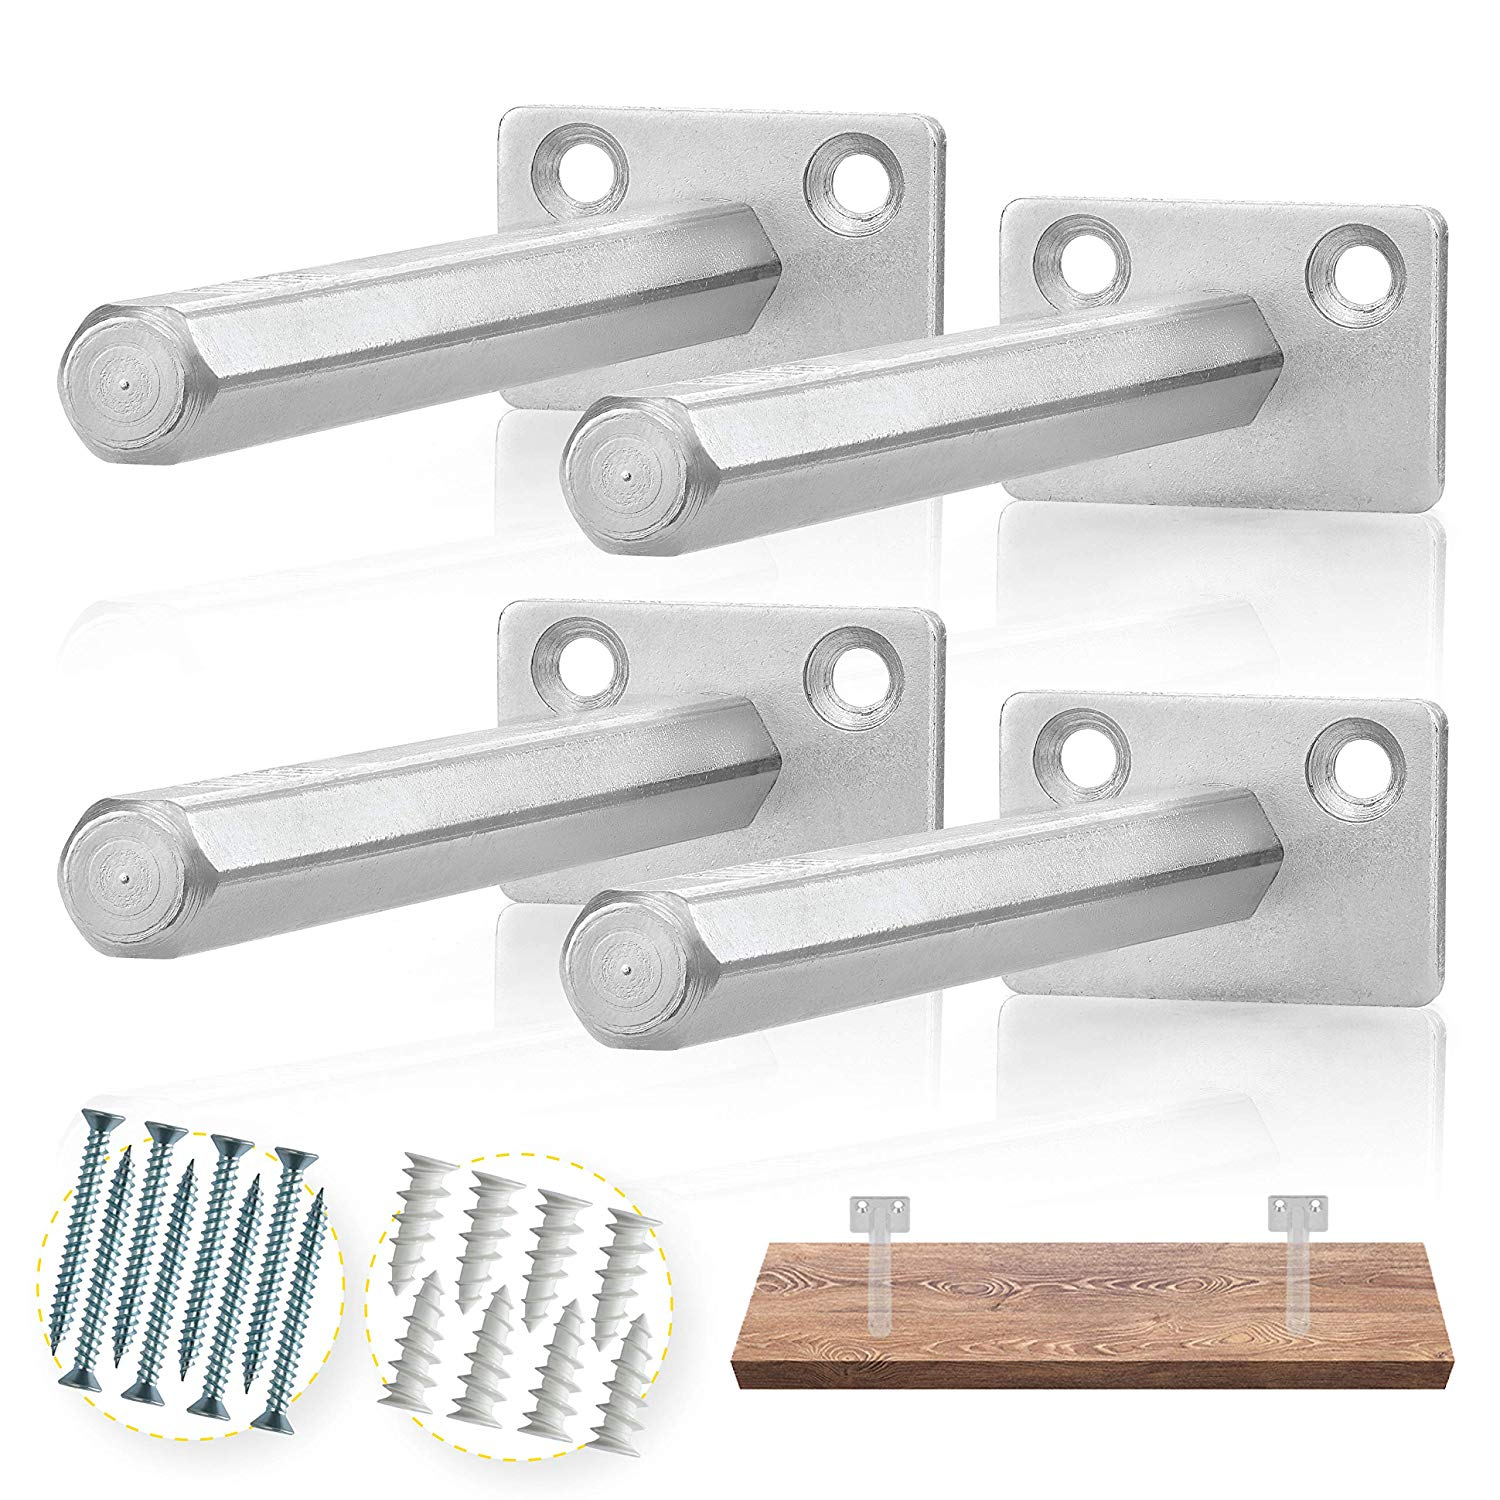 batoda floating shelf bracket pcs galvanized steel xuzl shelves mounting kit blind supports hidden brackets for wood concealed support echogear full motion width ikea entry table